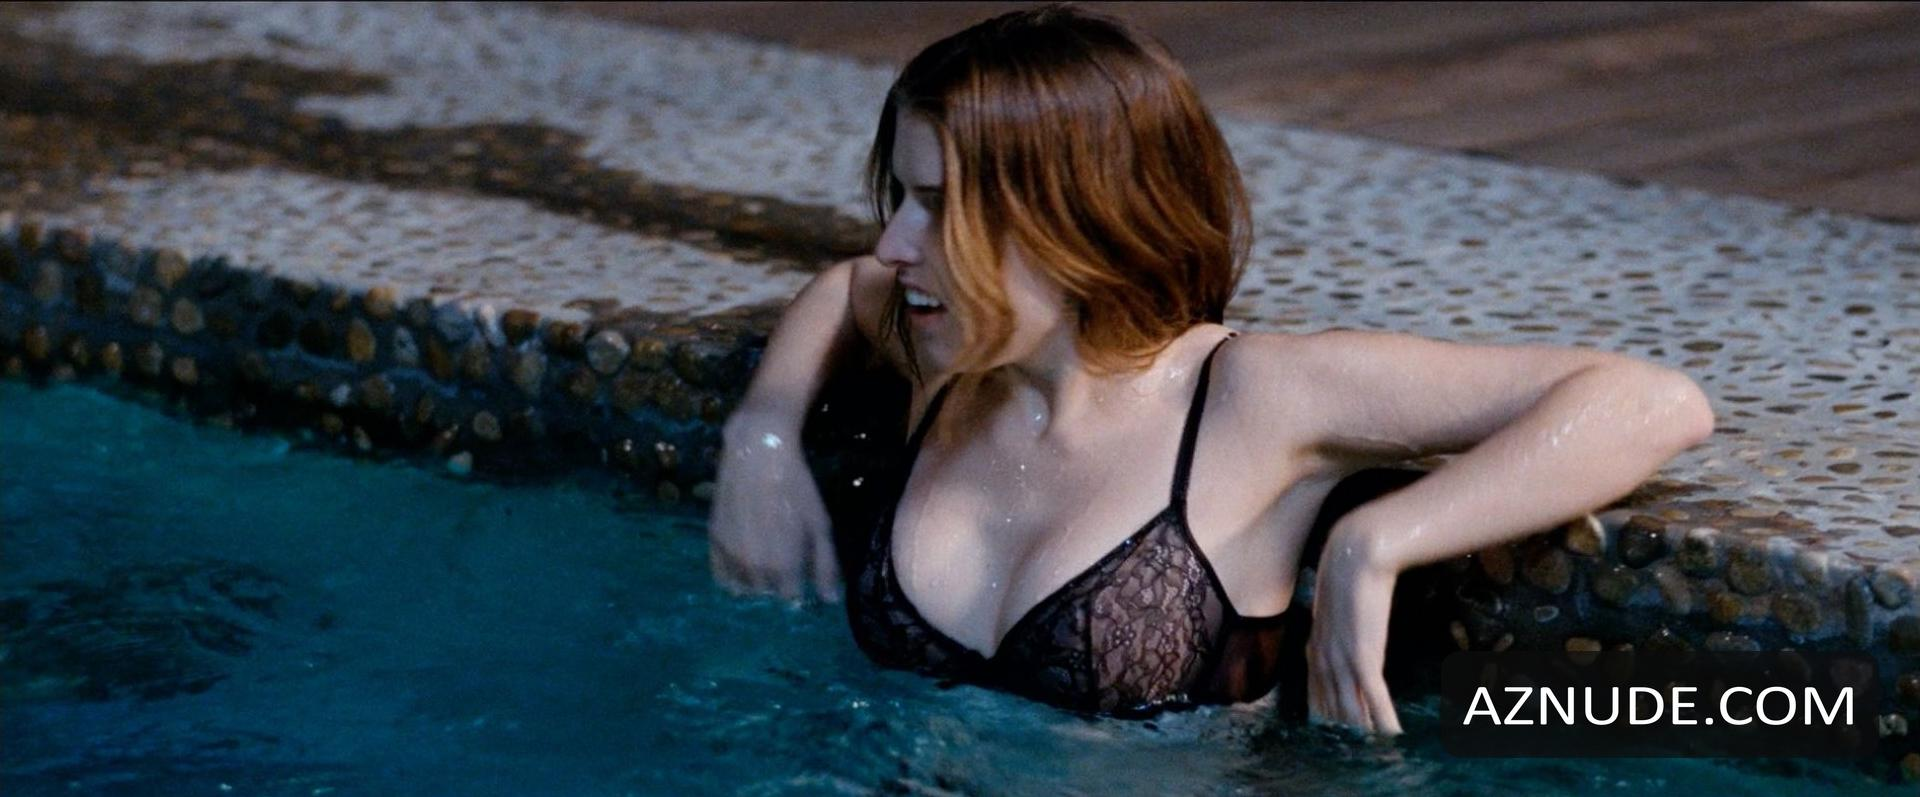 Anna kendrick sex scene on scandalplanetcom - 1 part 3